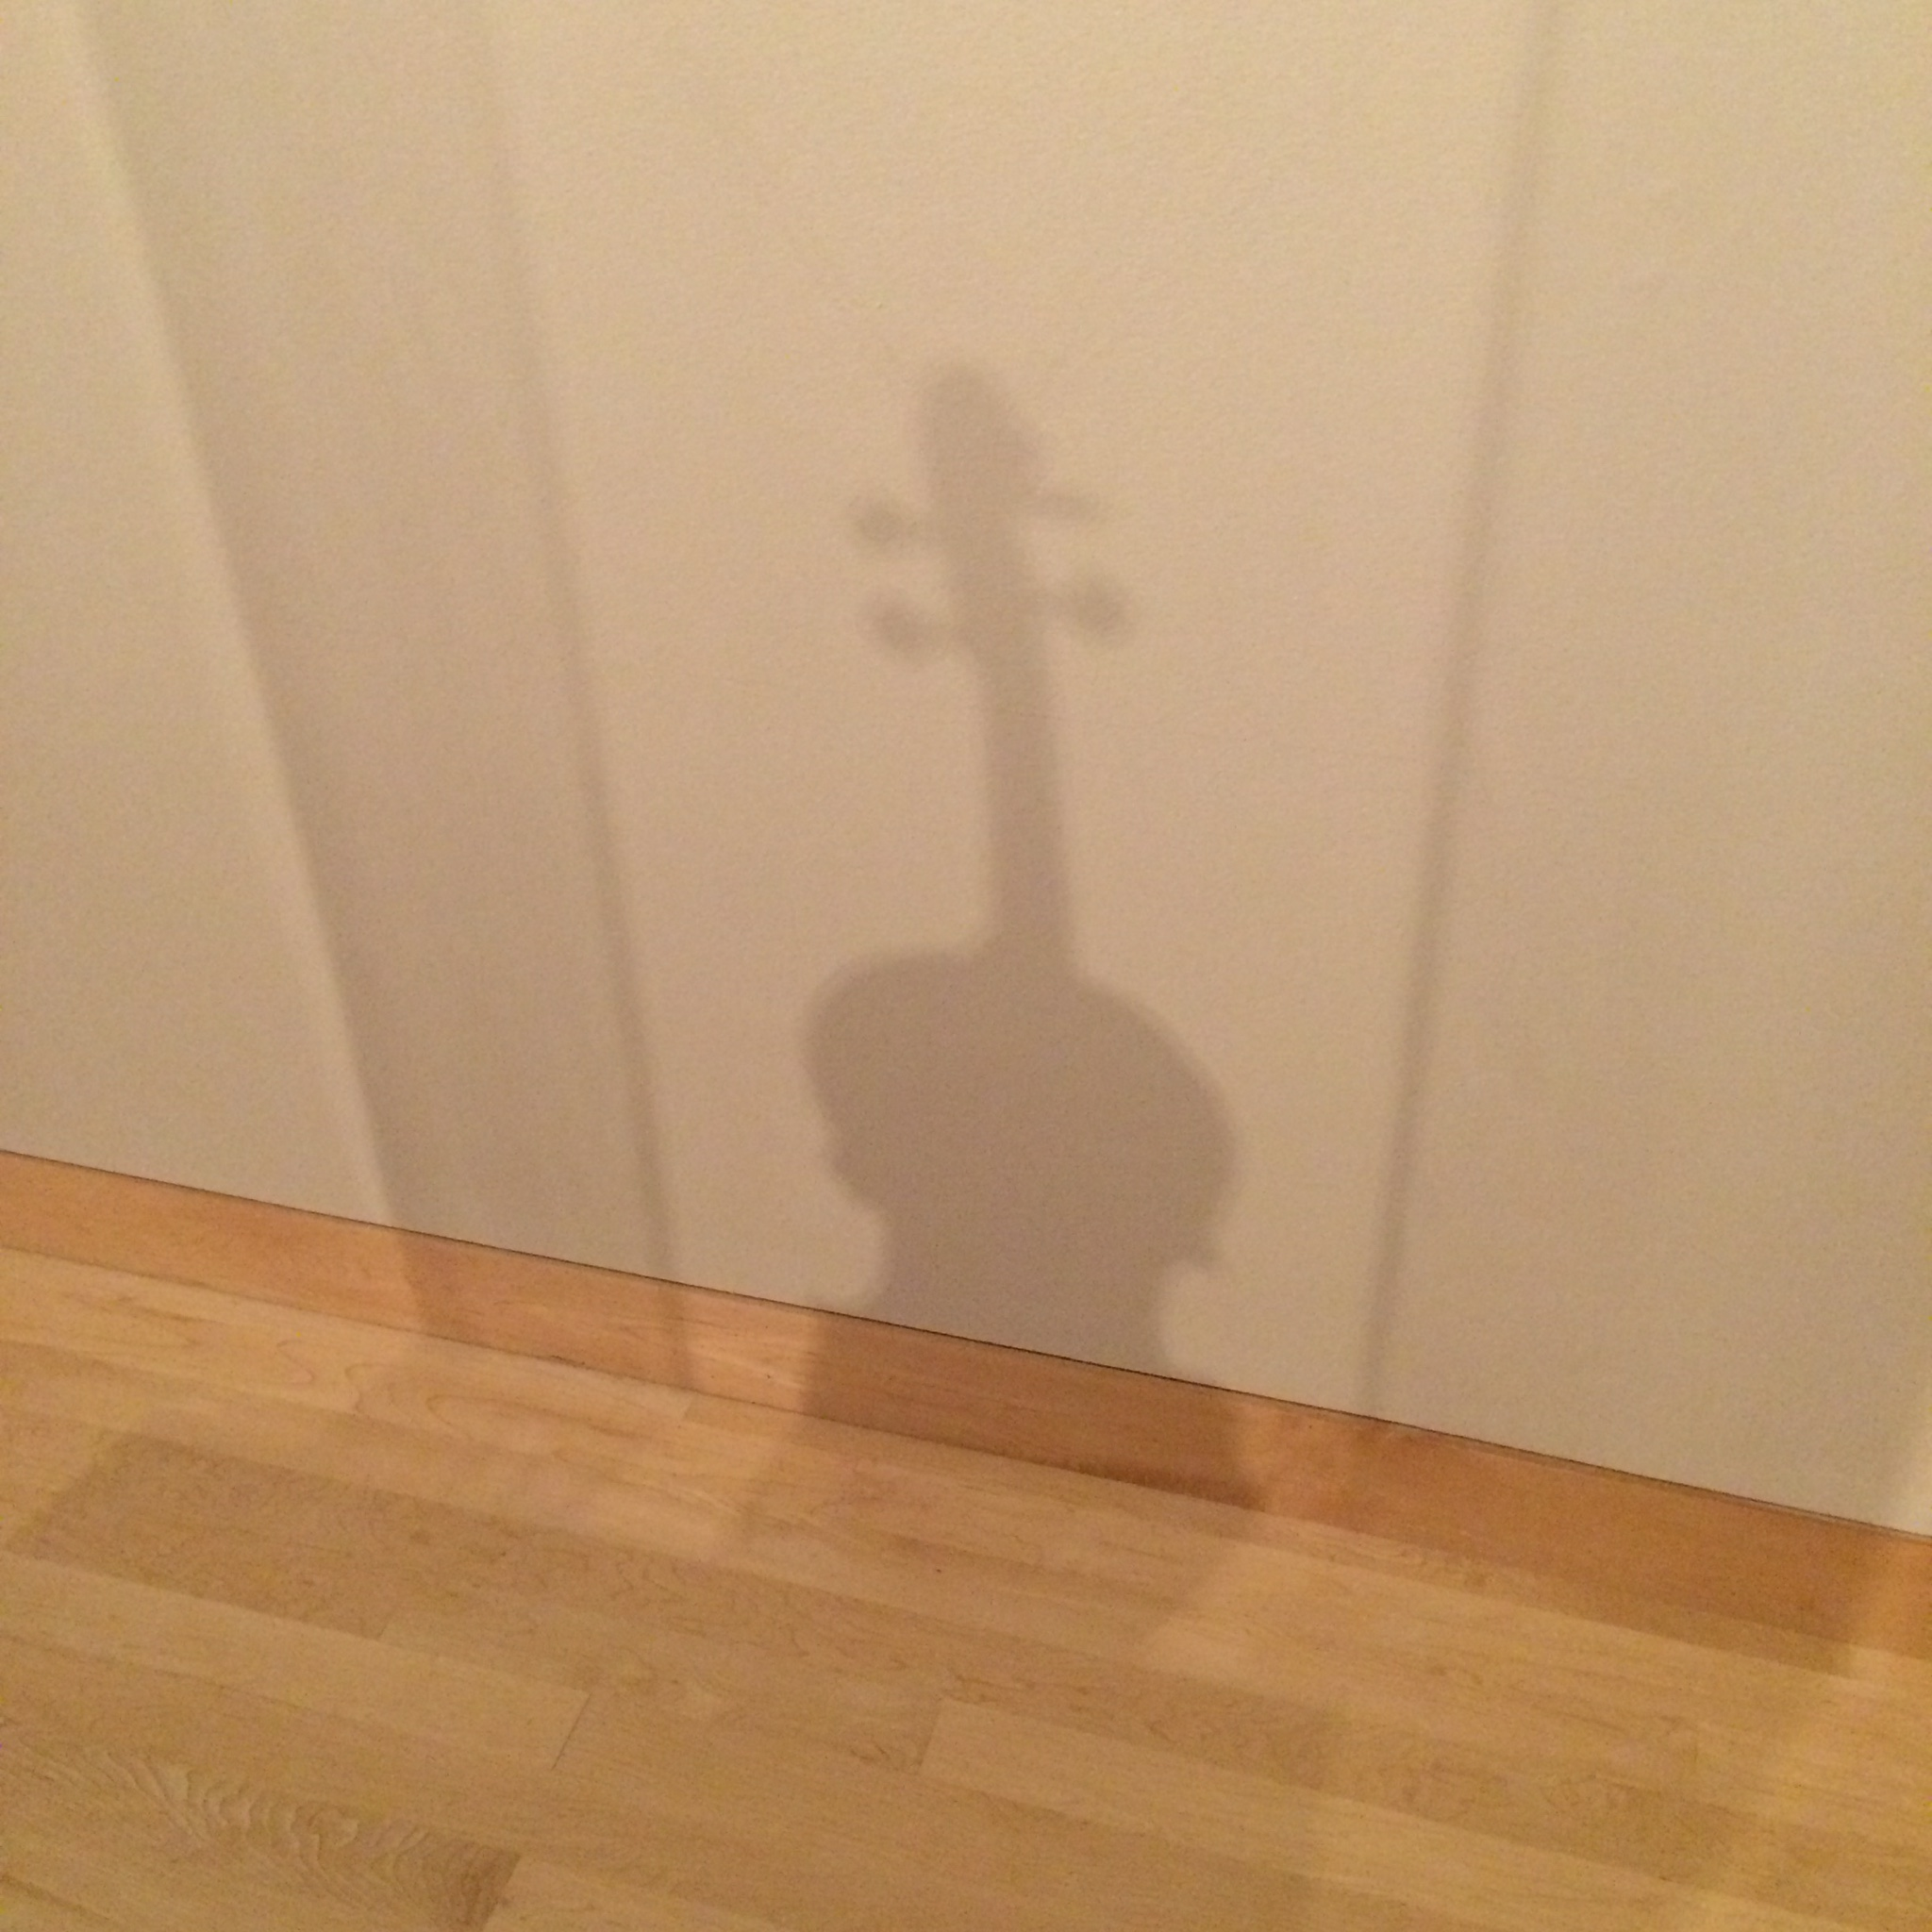 In the shadow of Stradivari